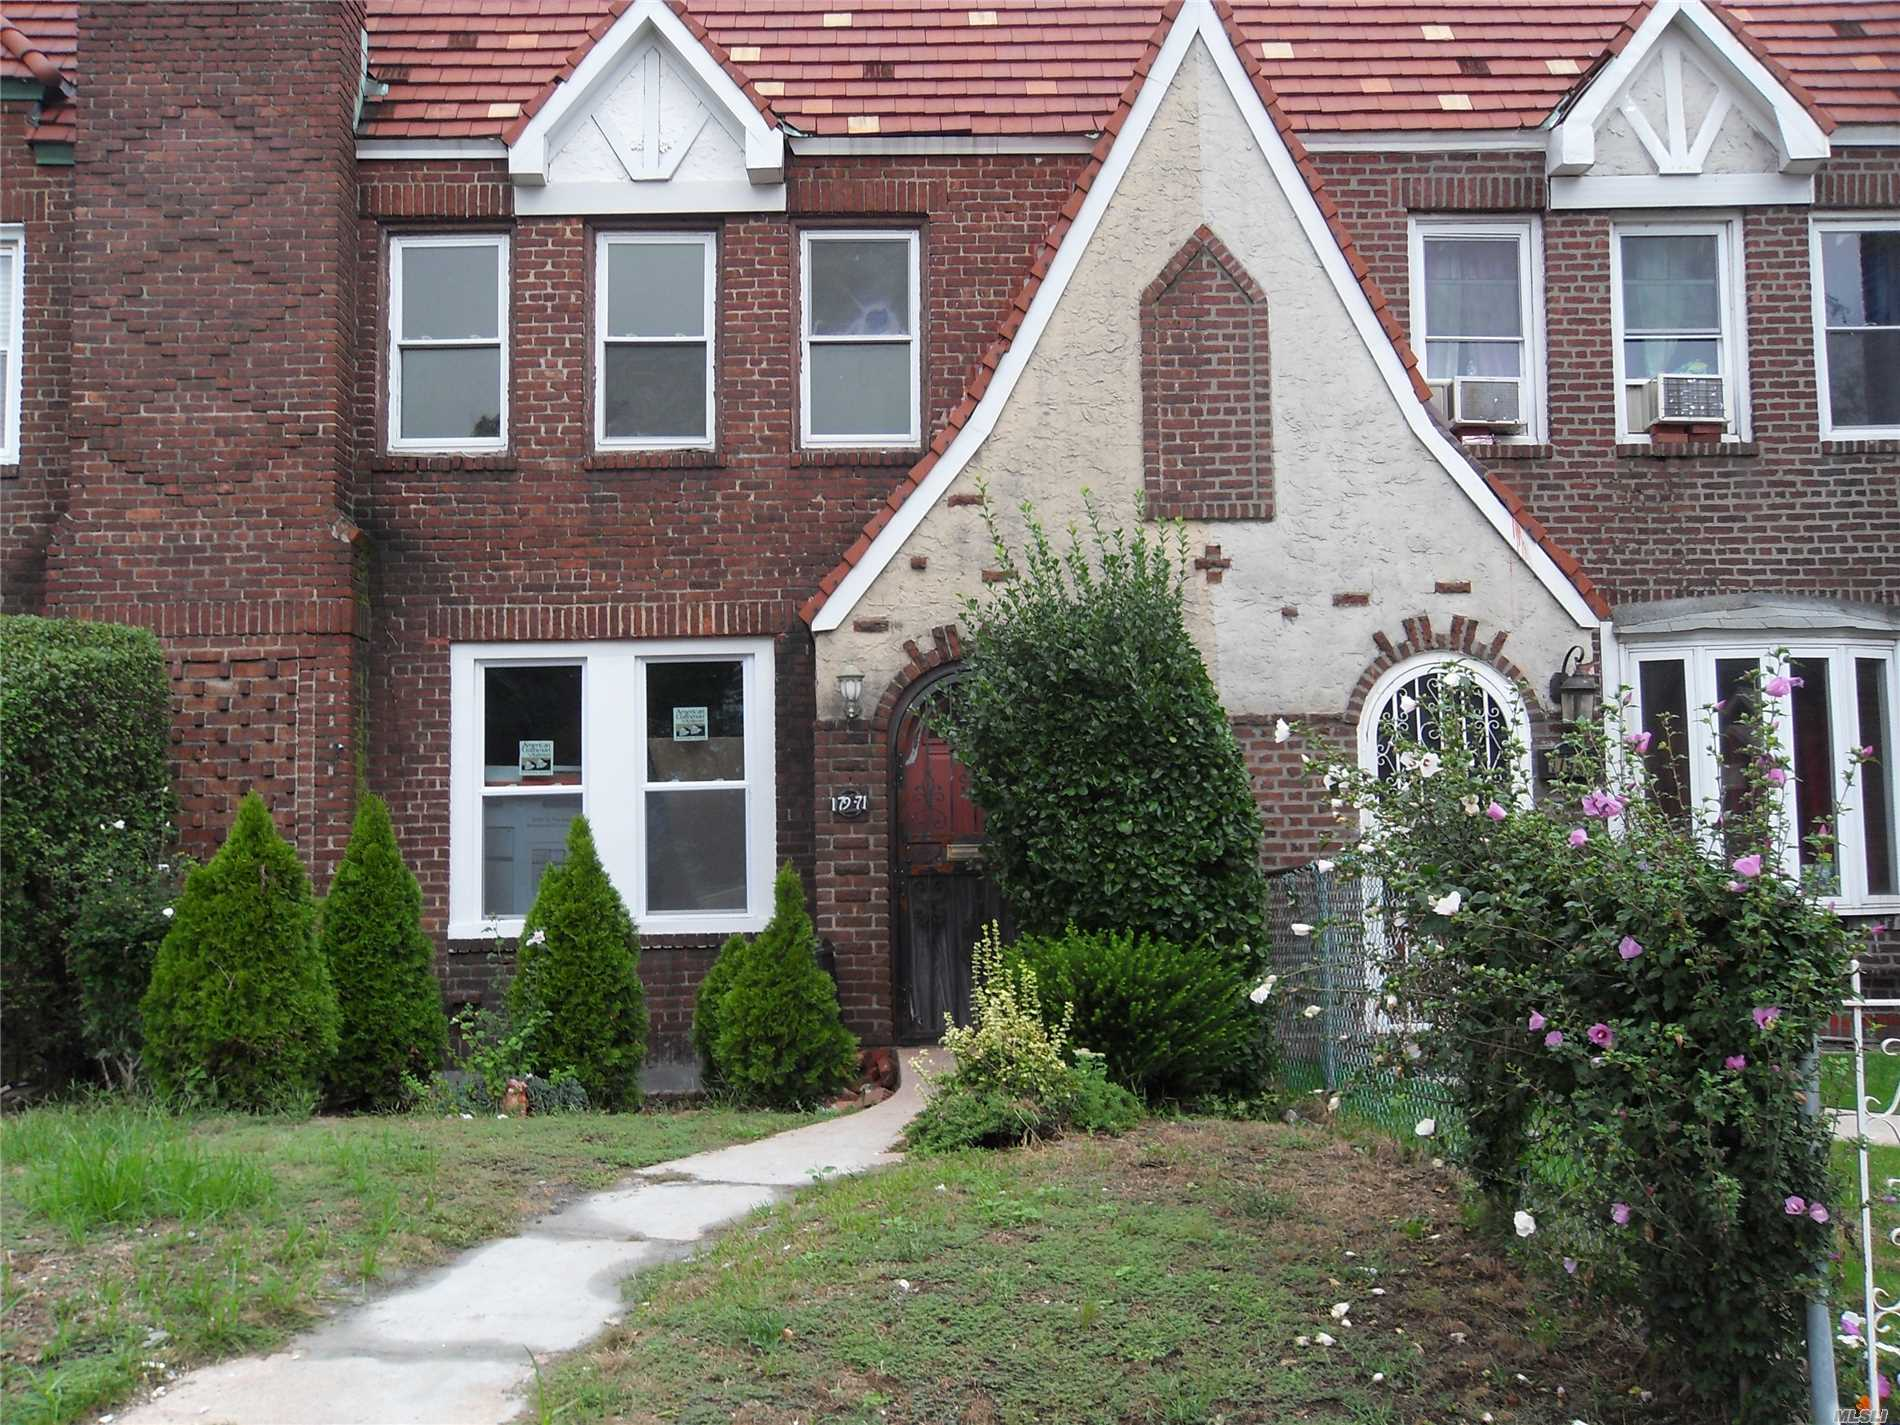 Brick Tudor Home, Renovated, Large Rooms. Livingroom W/Fireplace. Formal Diningroom W/Sliding Doors To Patio, Updated Kitchen - Stainless Steele Appliances And Quartz Countertops,  3 Bedrooms, 2.5 Bathrooms, Finished Basement/W High Ceilings, Additional Fireplace And Separate Outside Entrance. Driveway And Garage In Rear. Situated On Beautiful St Albans Block. Close To All.